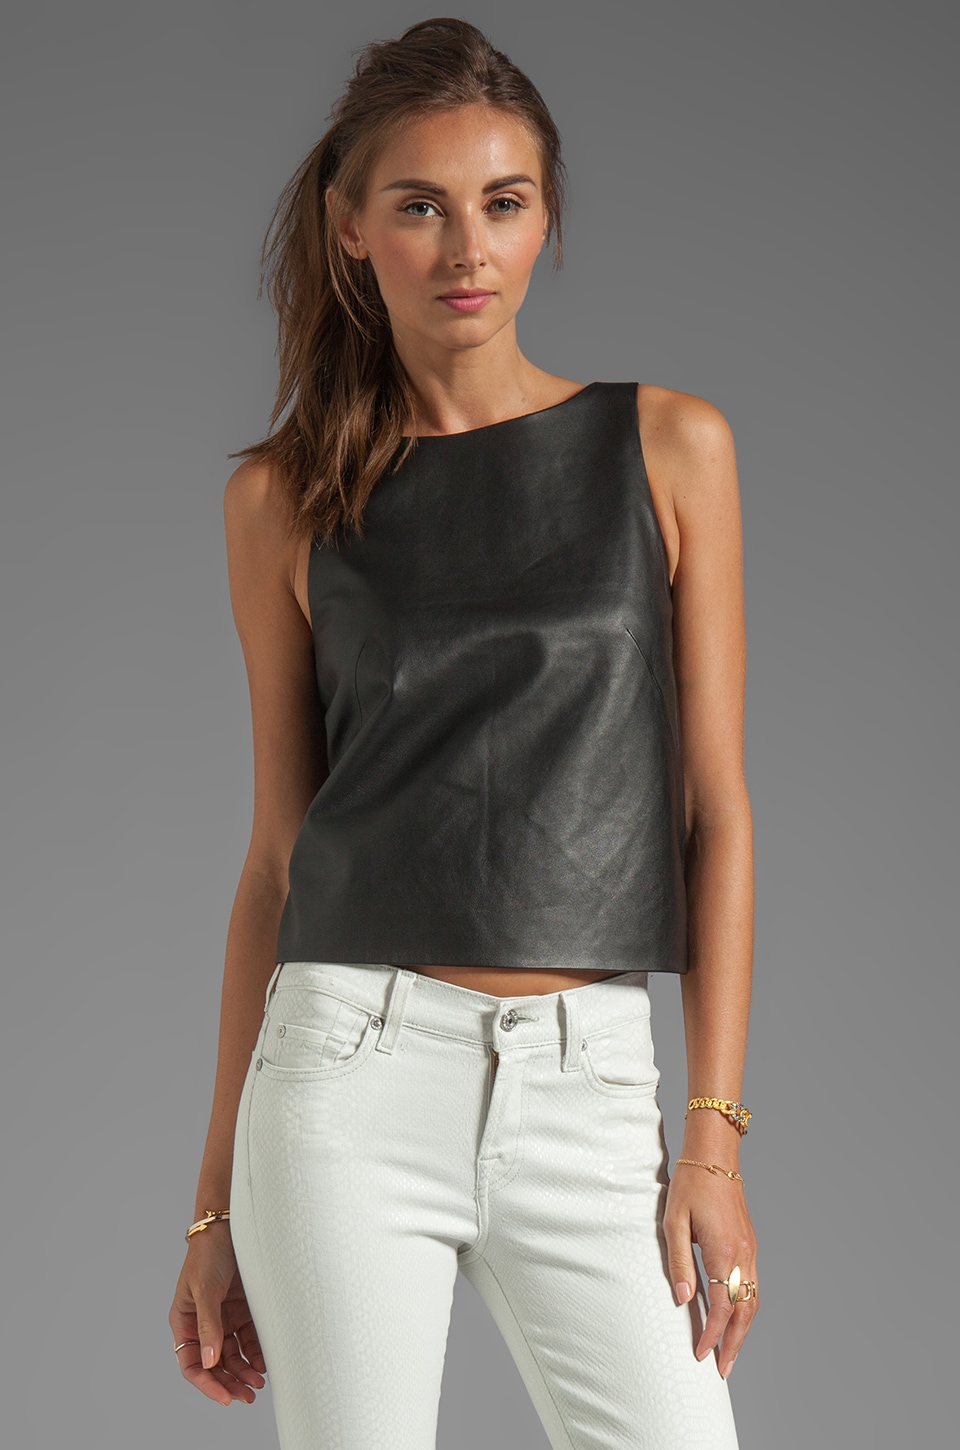 Tibi Leather and Ponte Crop Top in Black